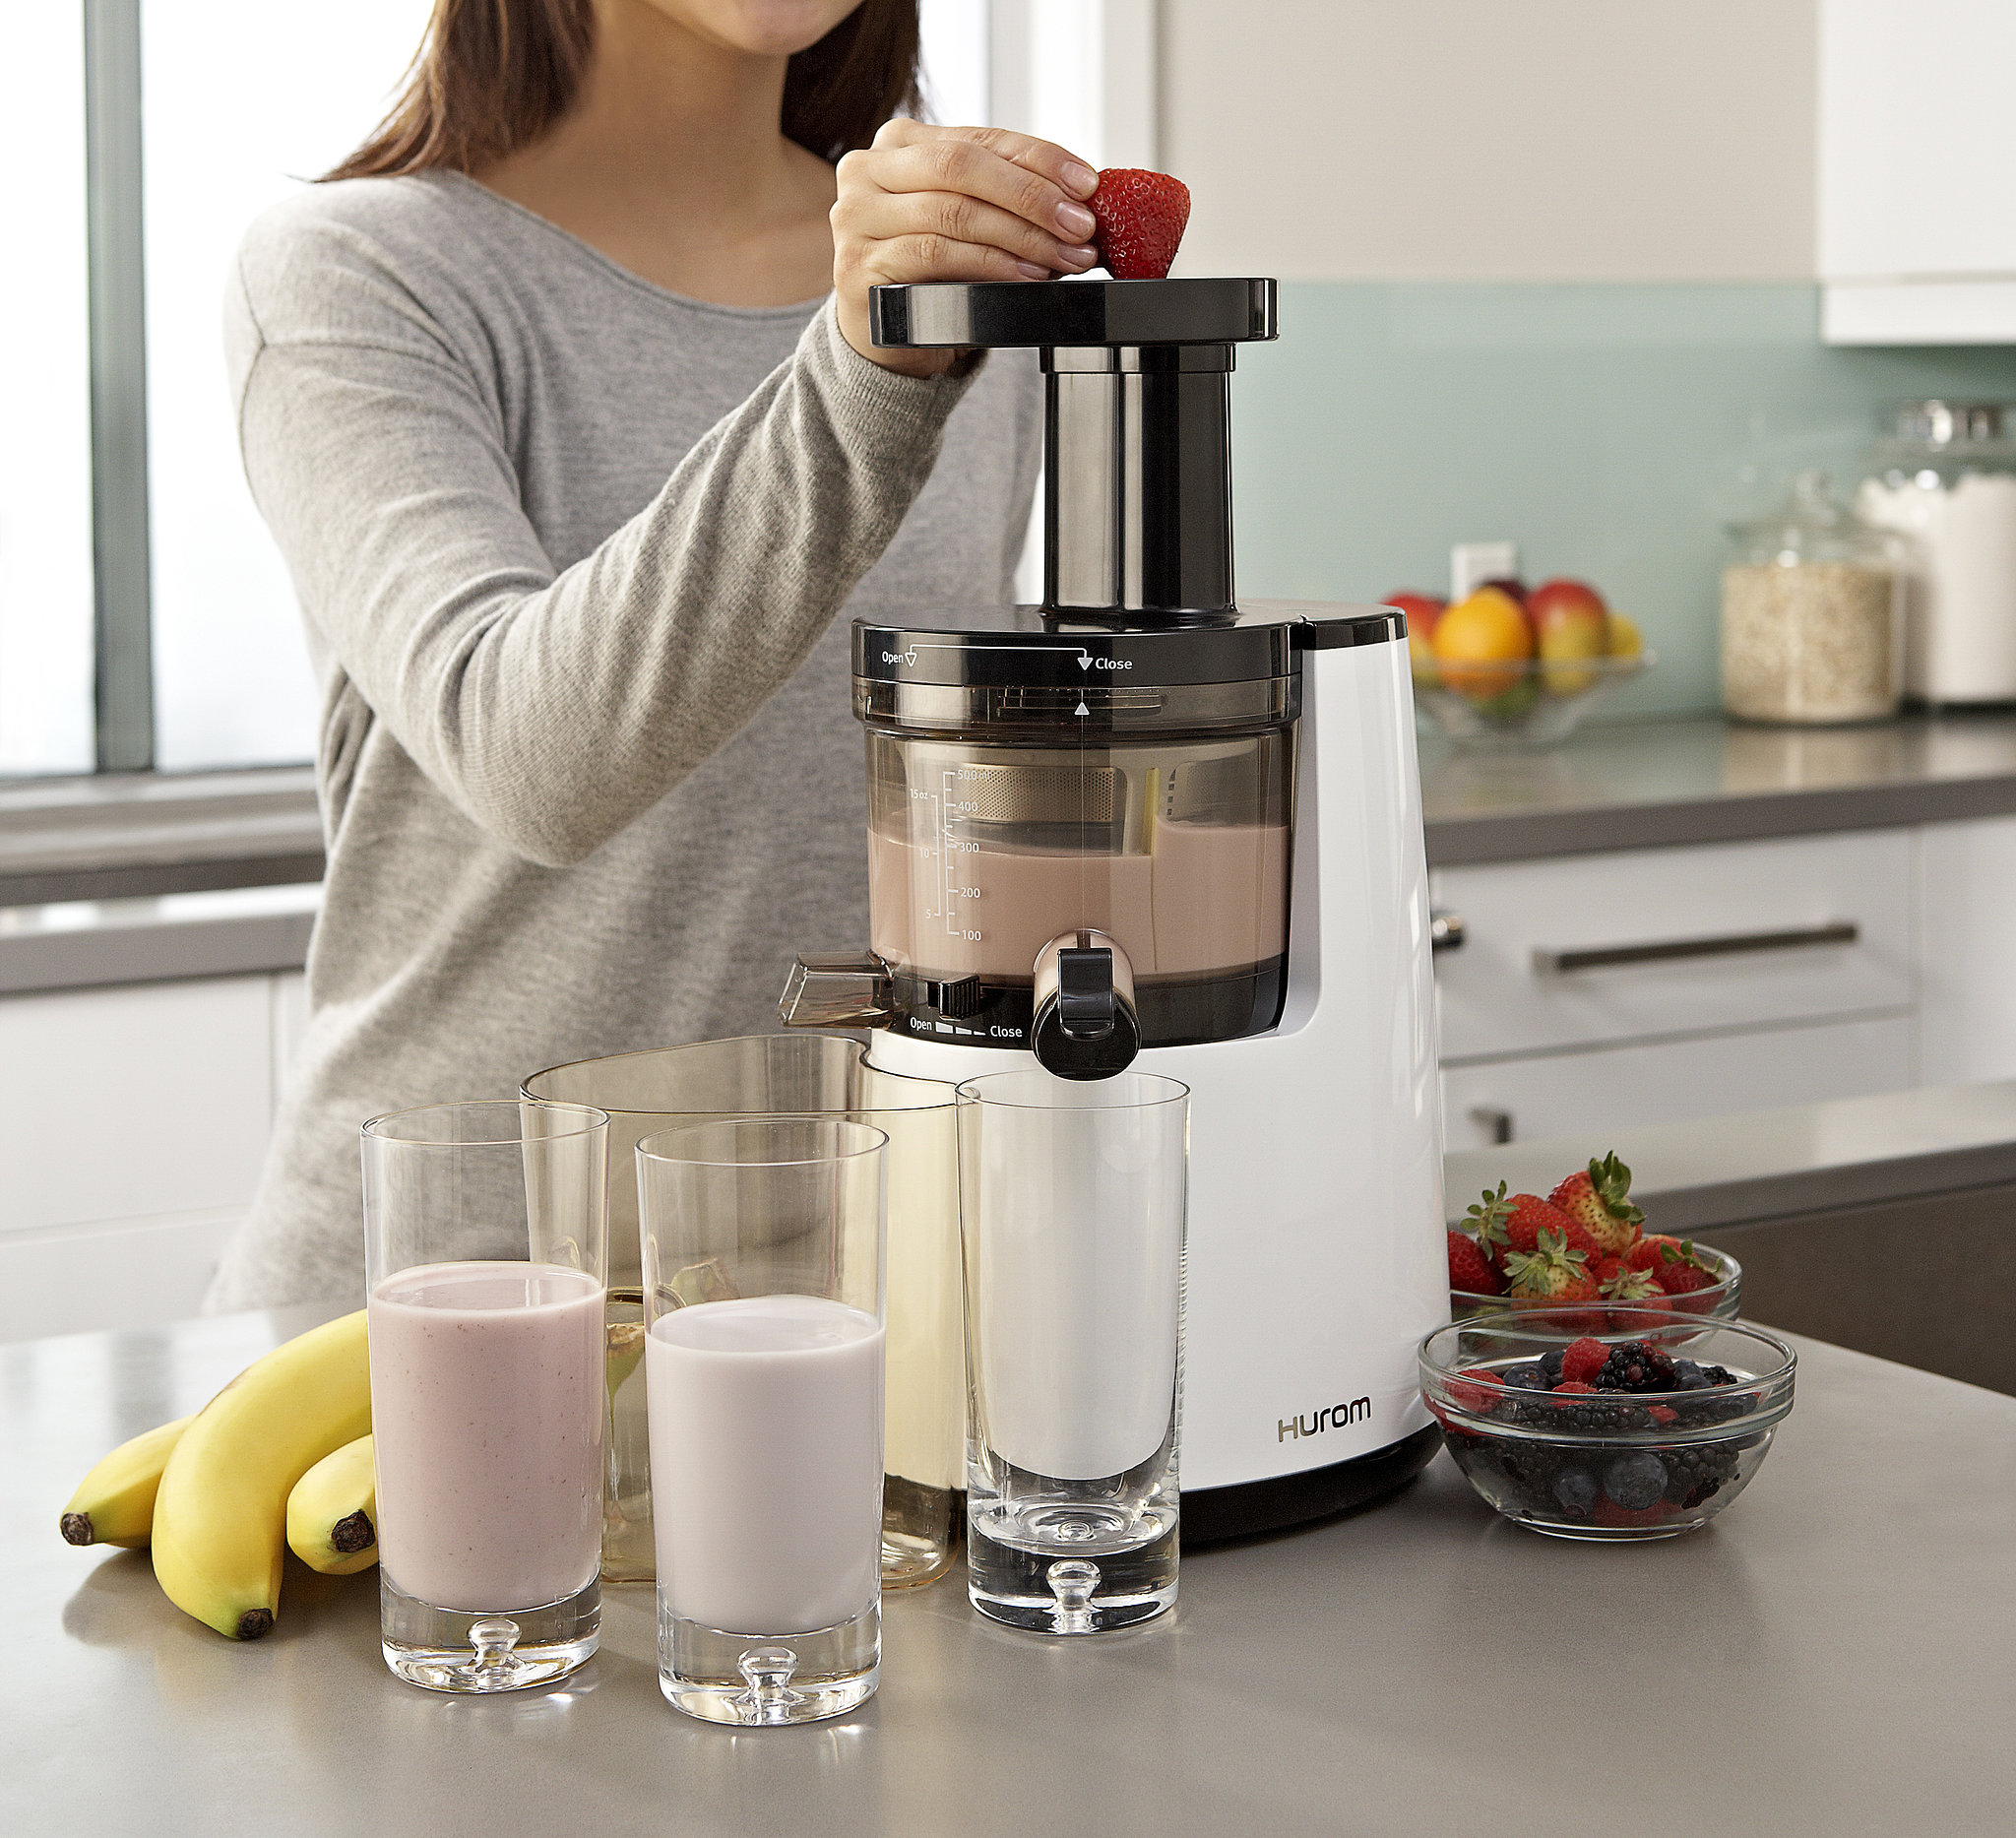 Hurom Slow Juicer And Smoothie Maker : Hurom Premium Juicer and Smoothie Maker On the Go: Our July Fitness Must Haves POPSUGAR Fitness